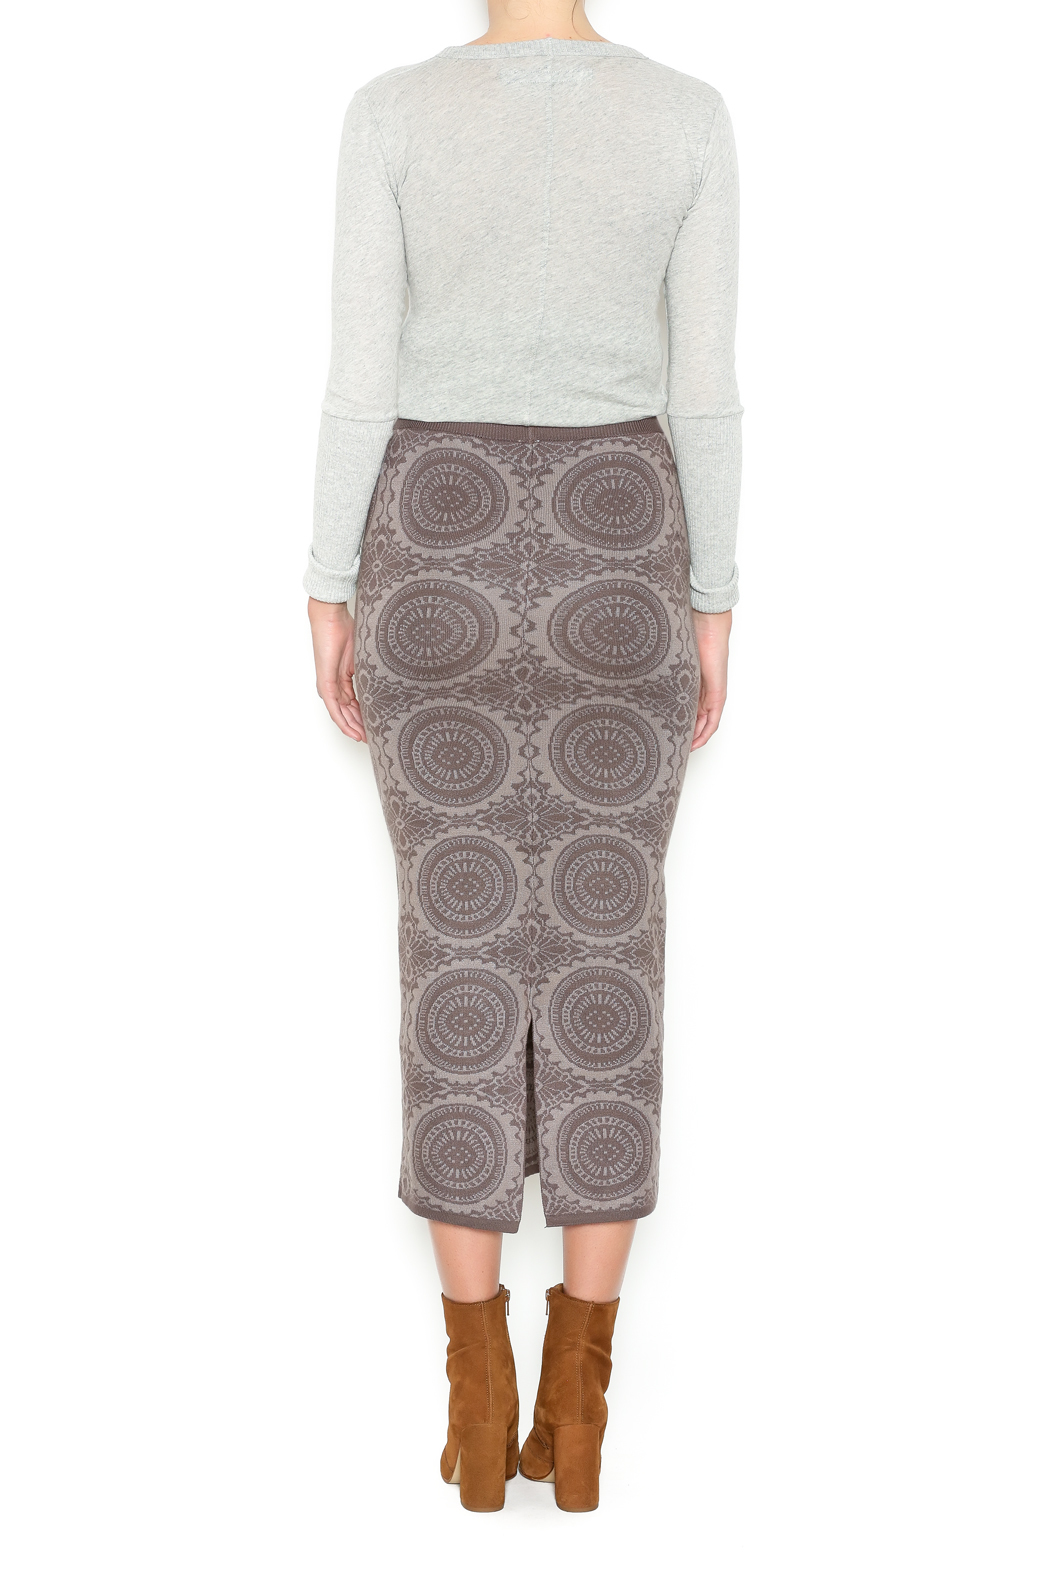 monoreno knit maxi skirt from williamsburg by fanaberie